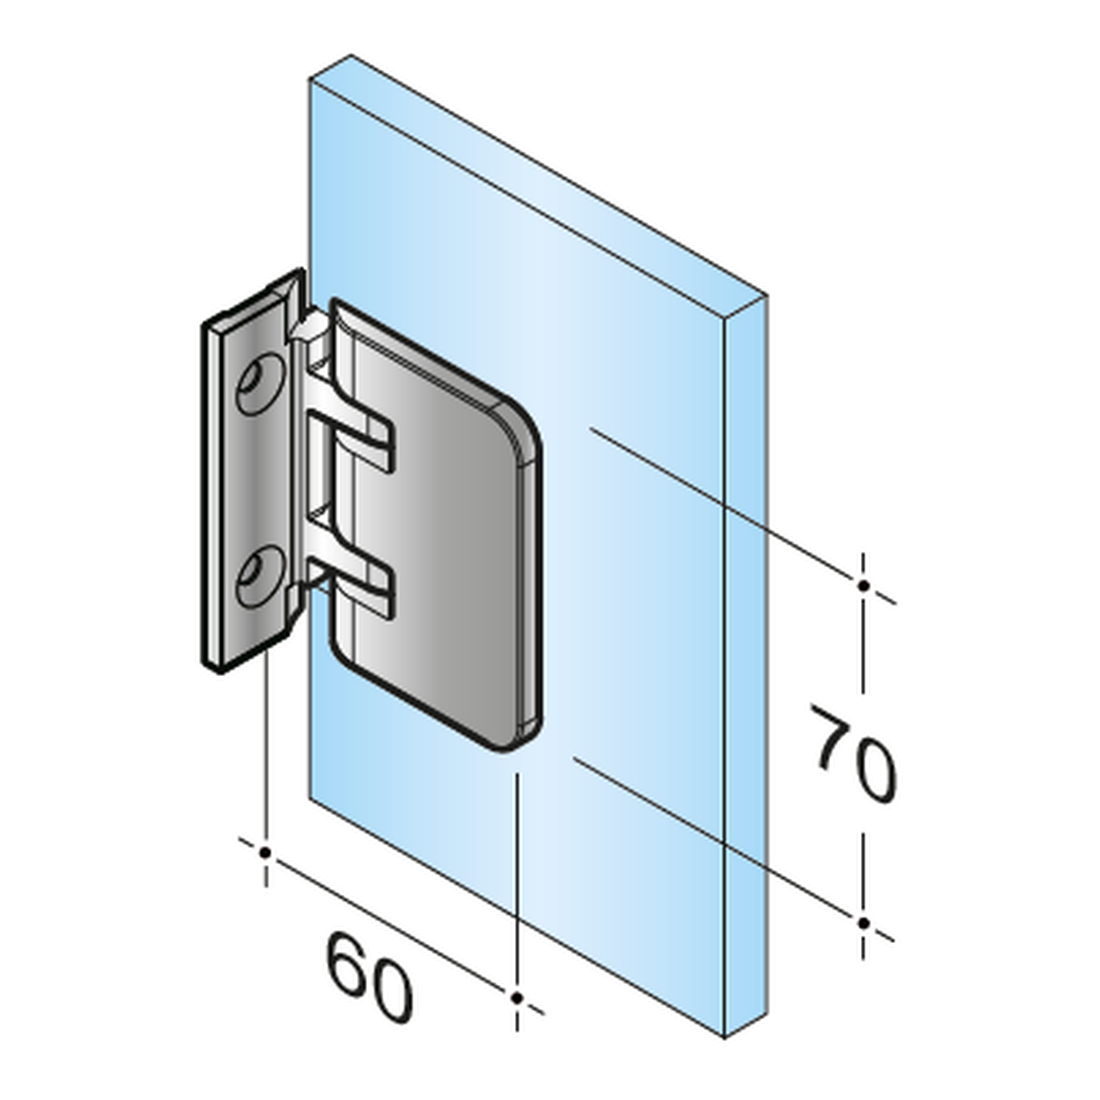 SWING PICCOLO 90° DOOR HINGE I GLASS - BOTH SIDES WALL PANEL